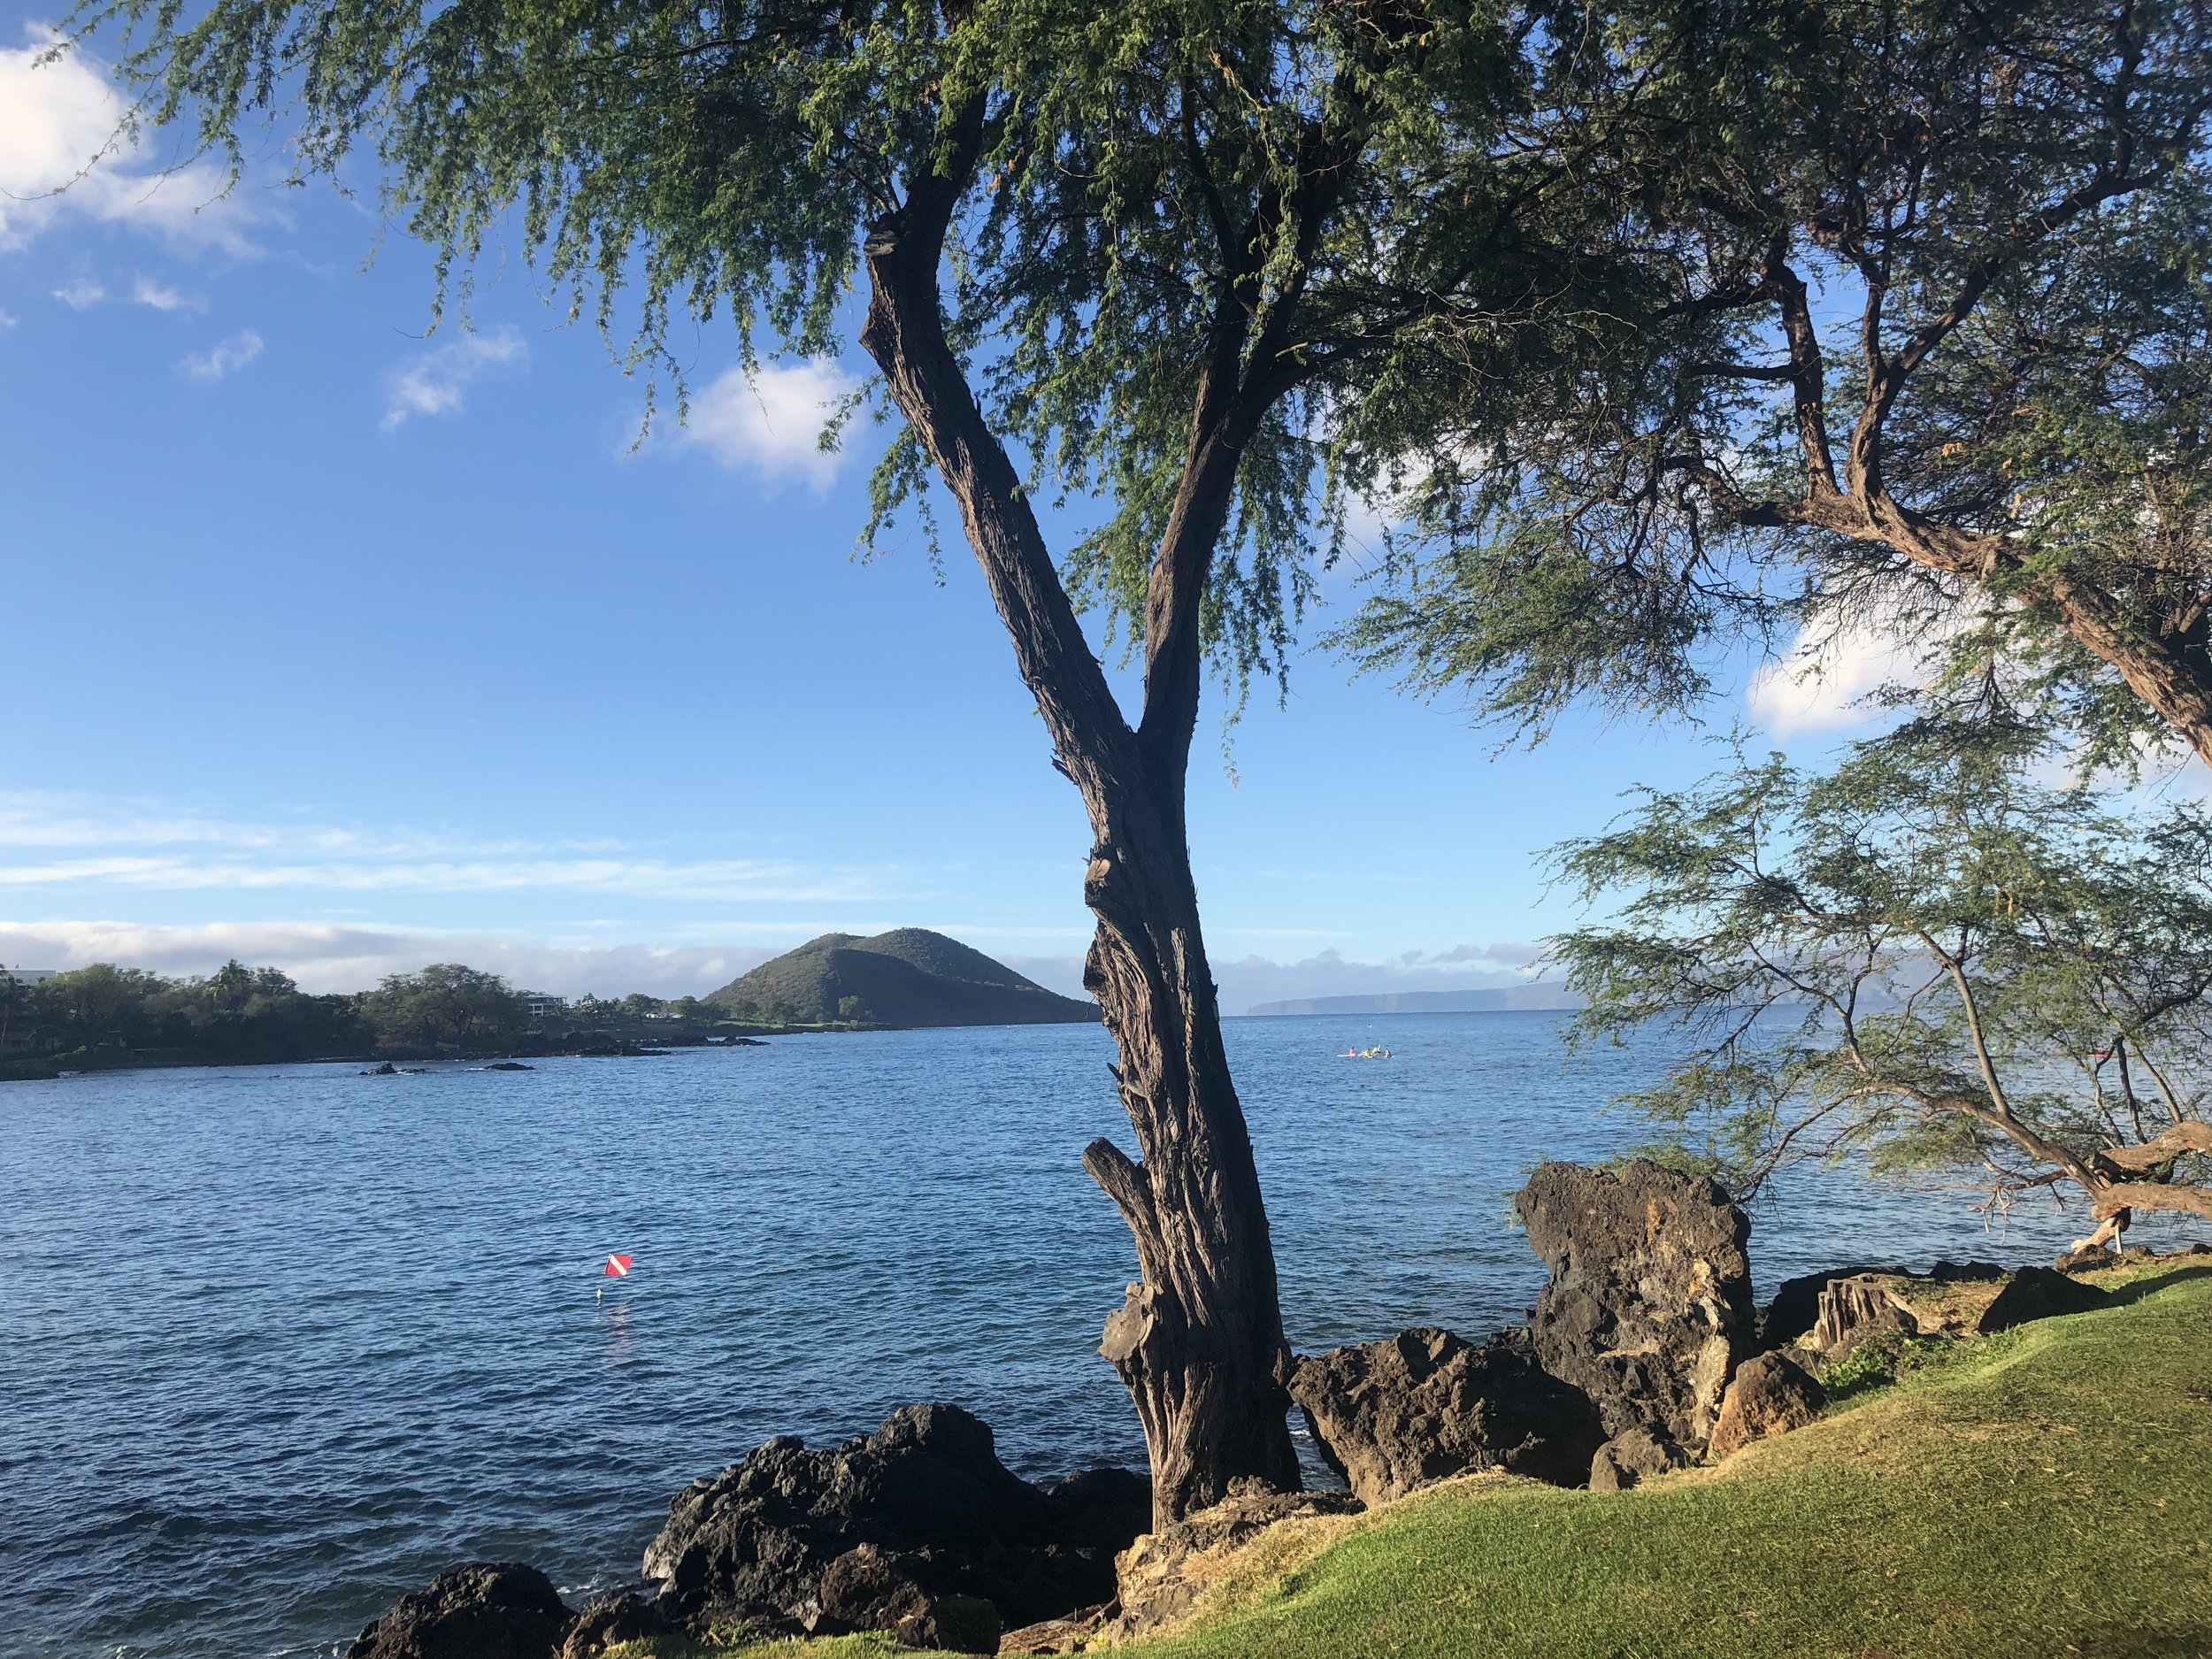 view of the Makena Bay in the early morning, calm waters and great visibility for SCUBA diving.